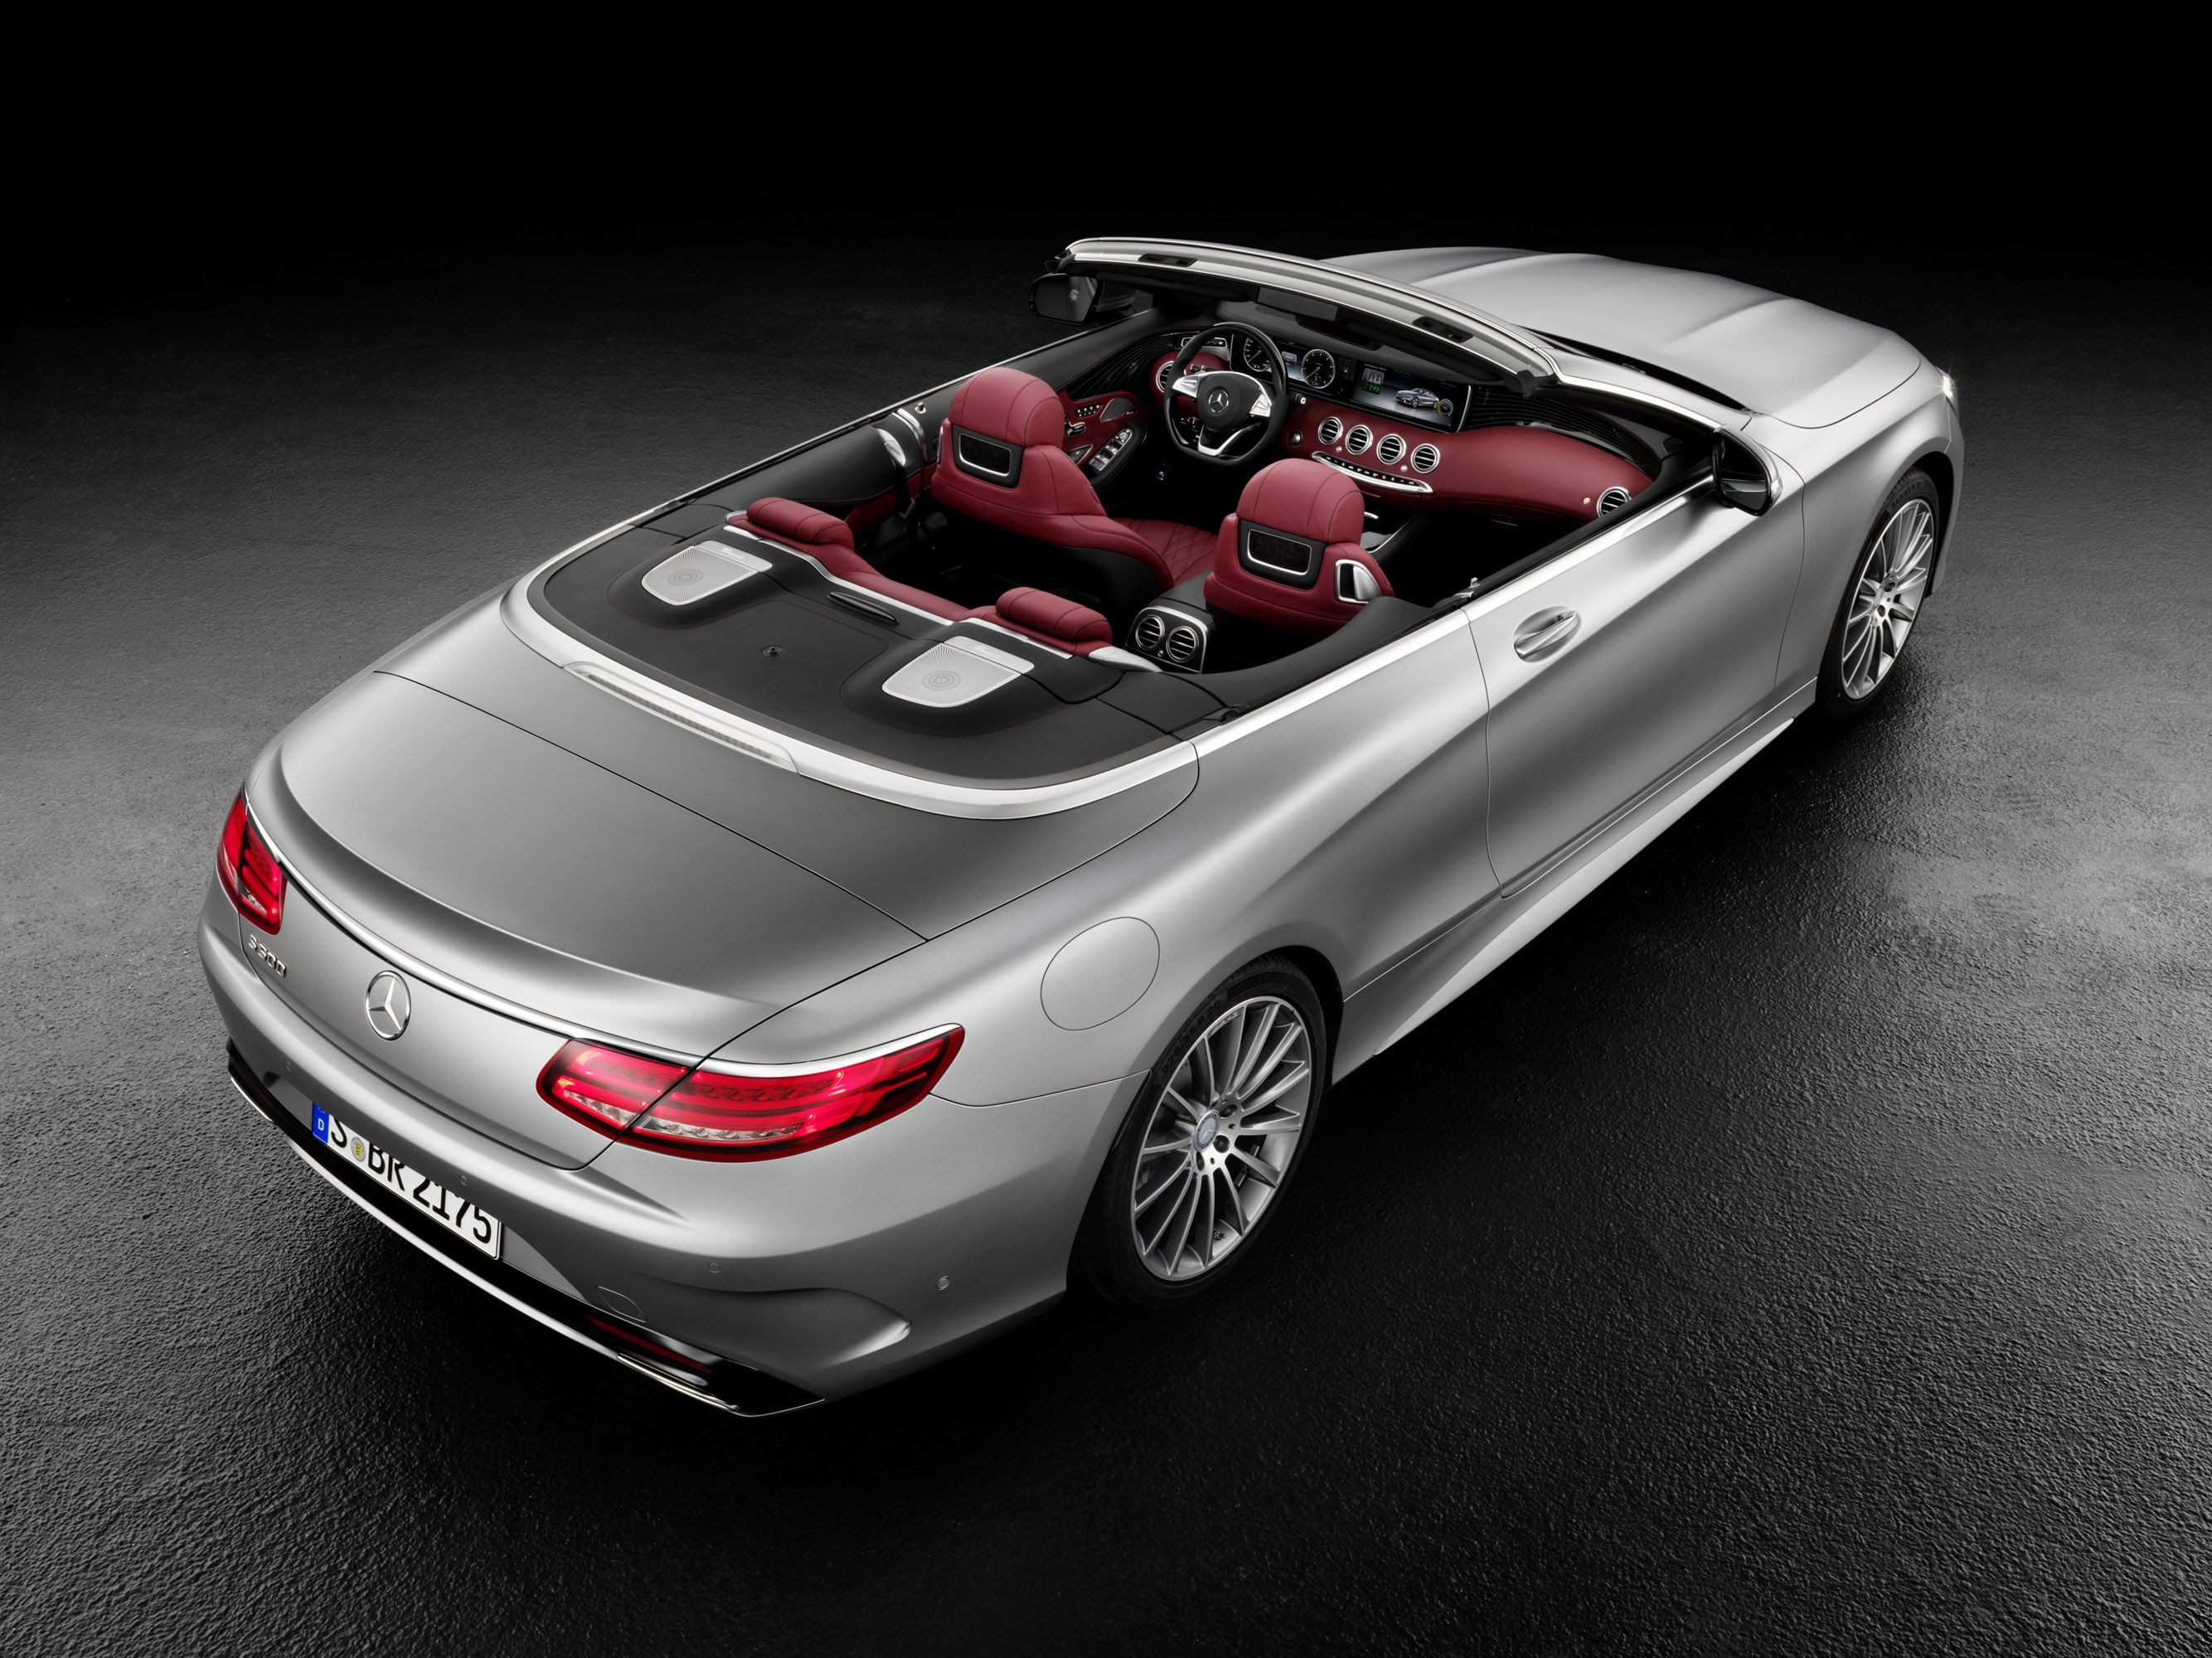 cabriolet mercedes pictures amg information wallpaper benz convertible specs used